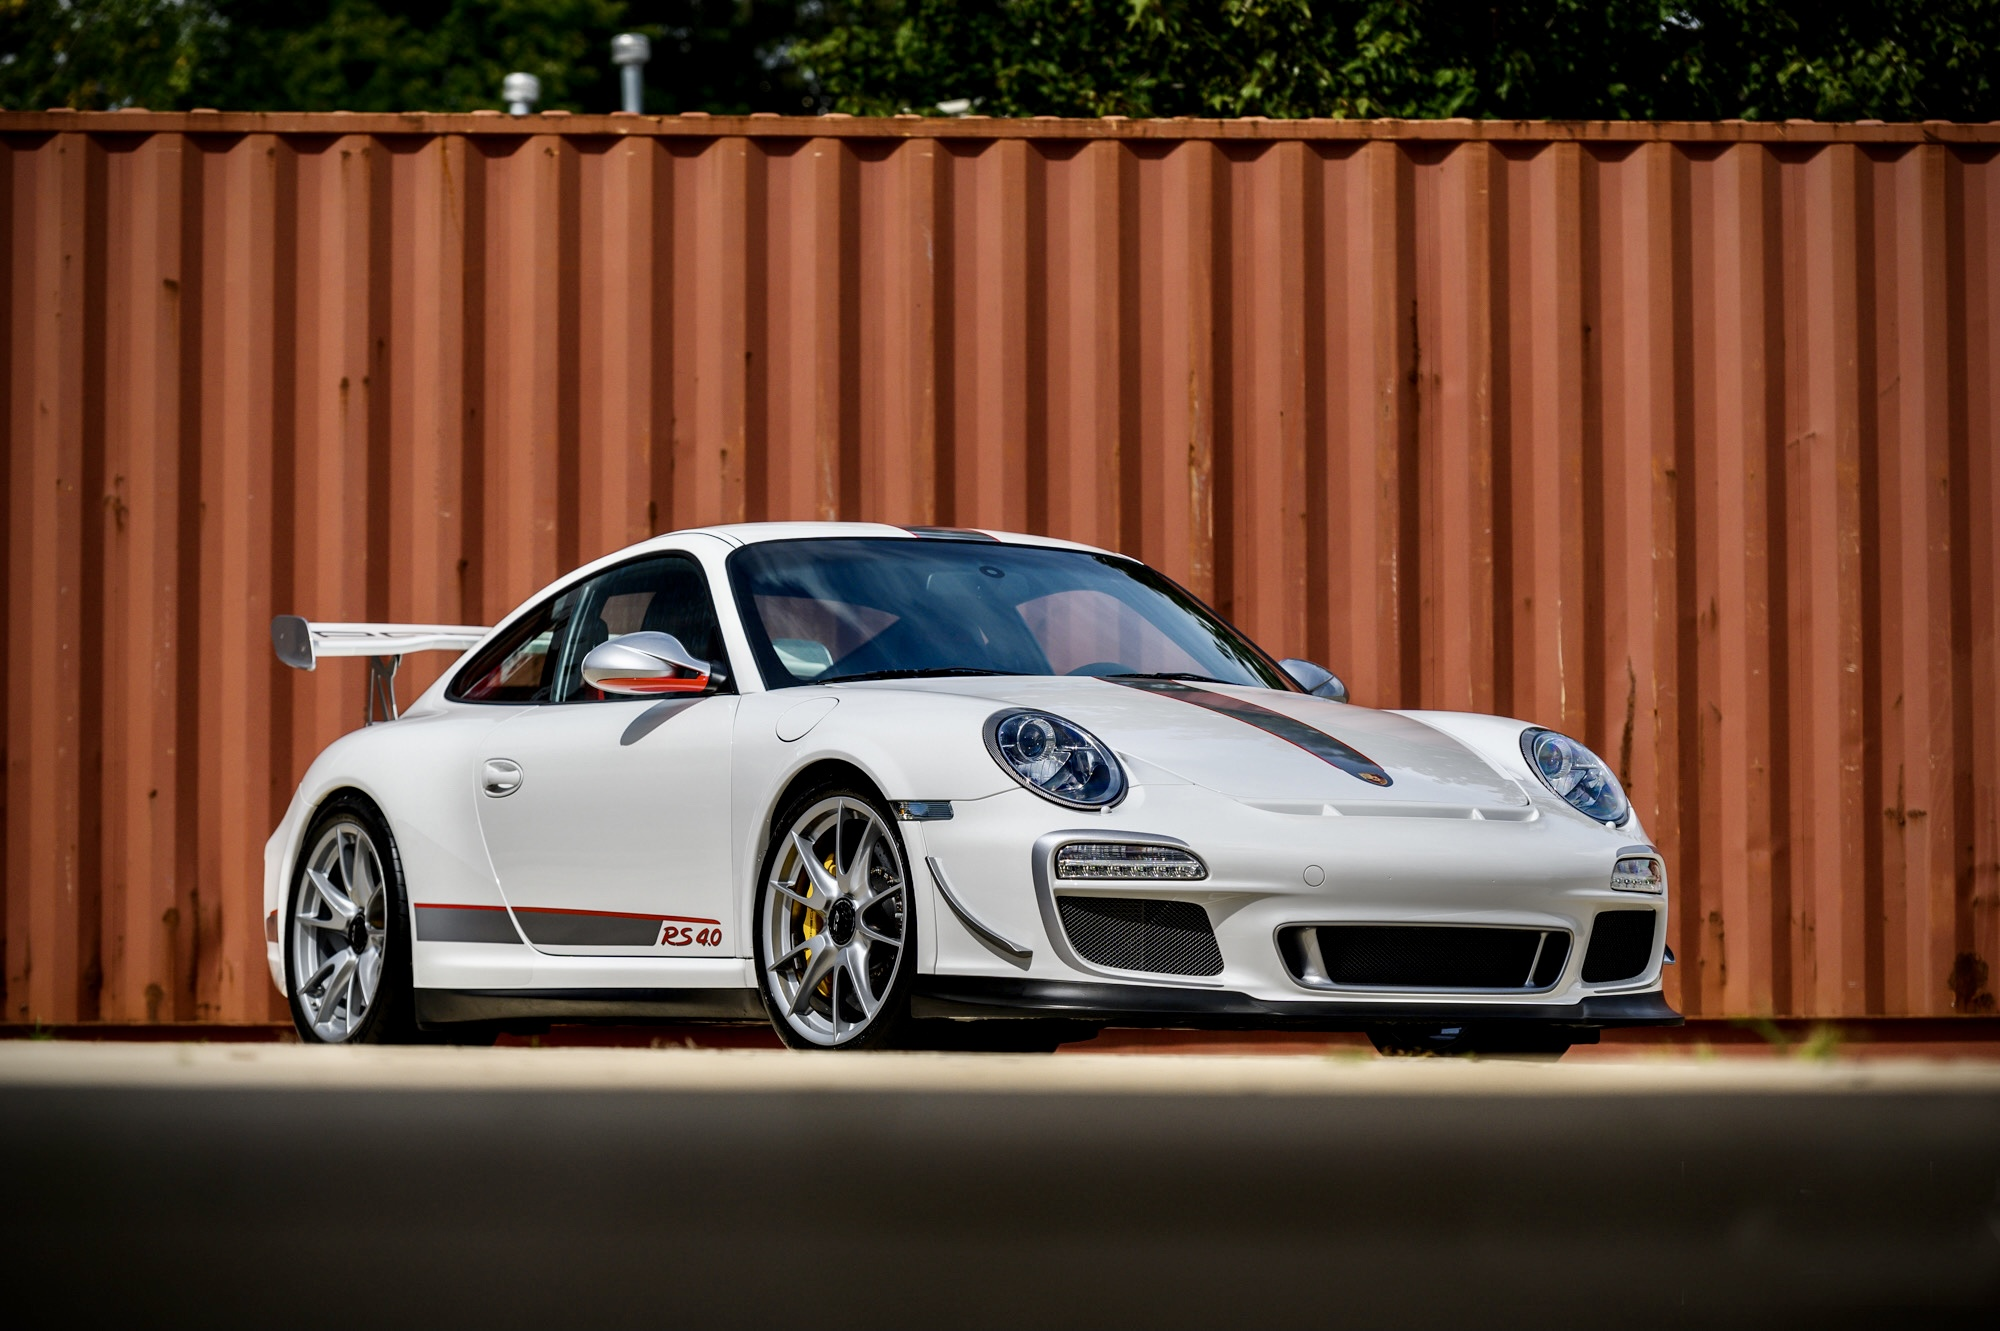 Porsche 997 Gt3 Rs 4 0 For Sale Used Porsche Sportscars Elferspot